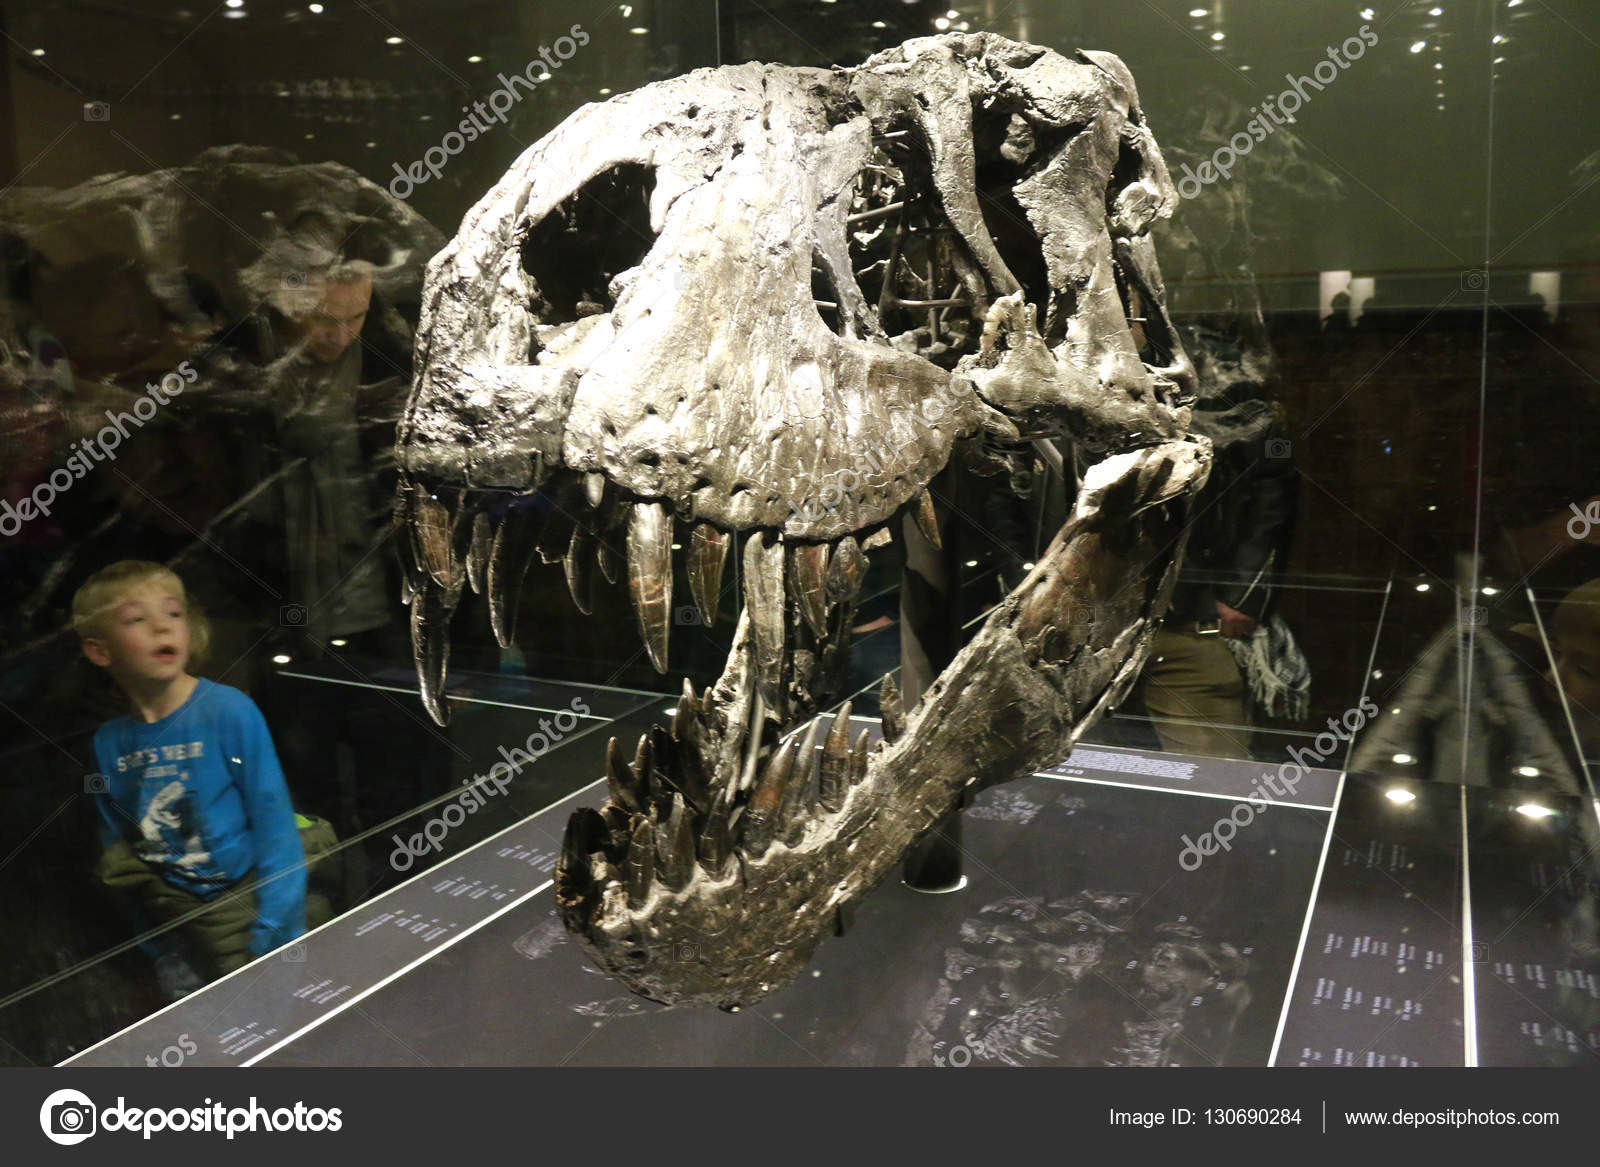 Skeleton of the tyrannus saurus rex tristan otto stock editorial december 2015 berlin the skeleton of the tyrannus saurus rex tristan otto on display at the museum of natural history berlin photo by 360ber thecheapjerseys Image collections